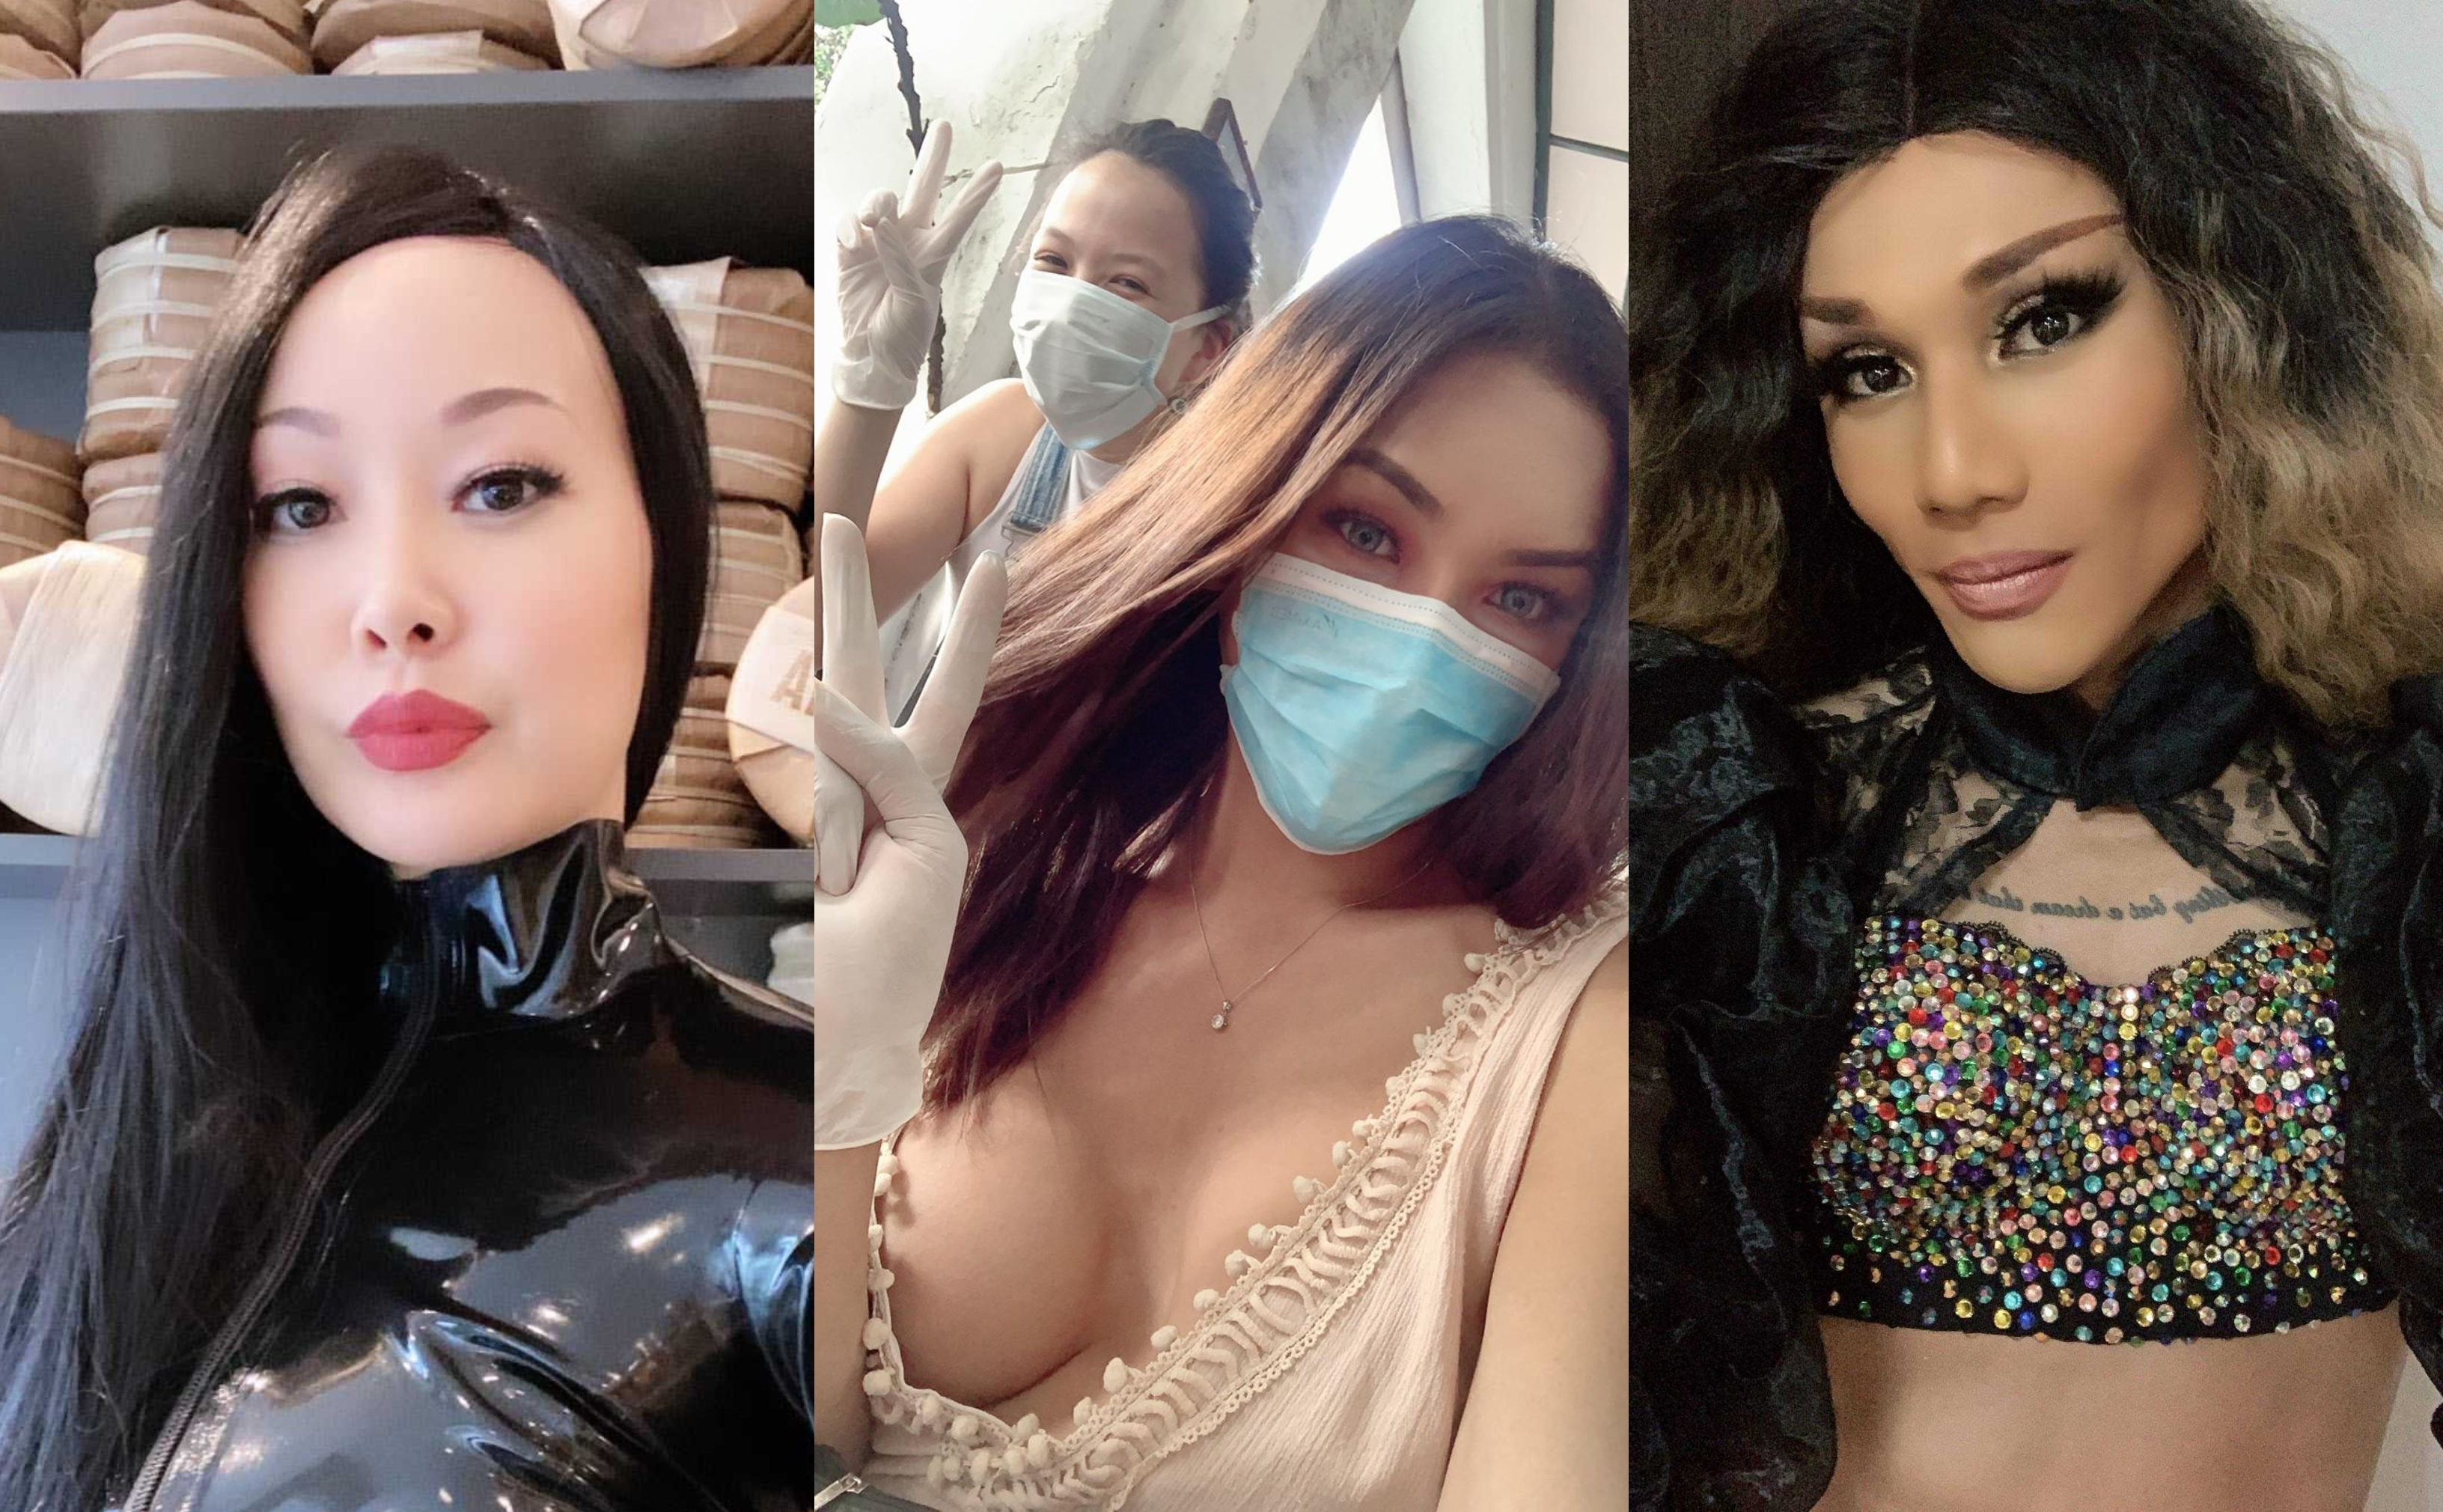 A Dominatrix, Drag Queen, and Sex Worker Tell Us How Covid-19 Has Hurt Their Jobs